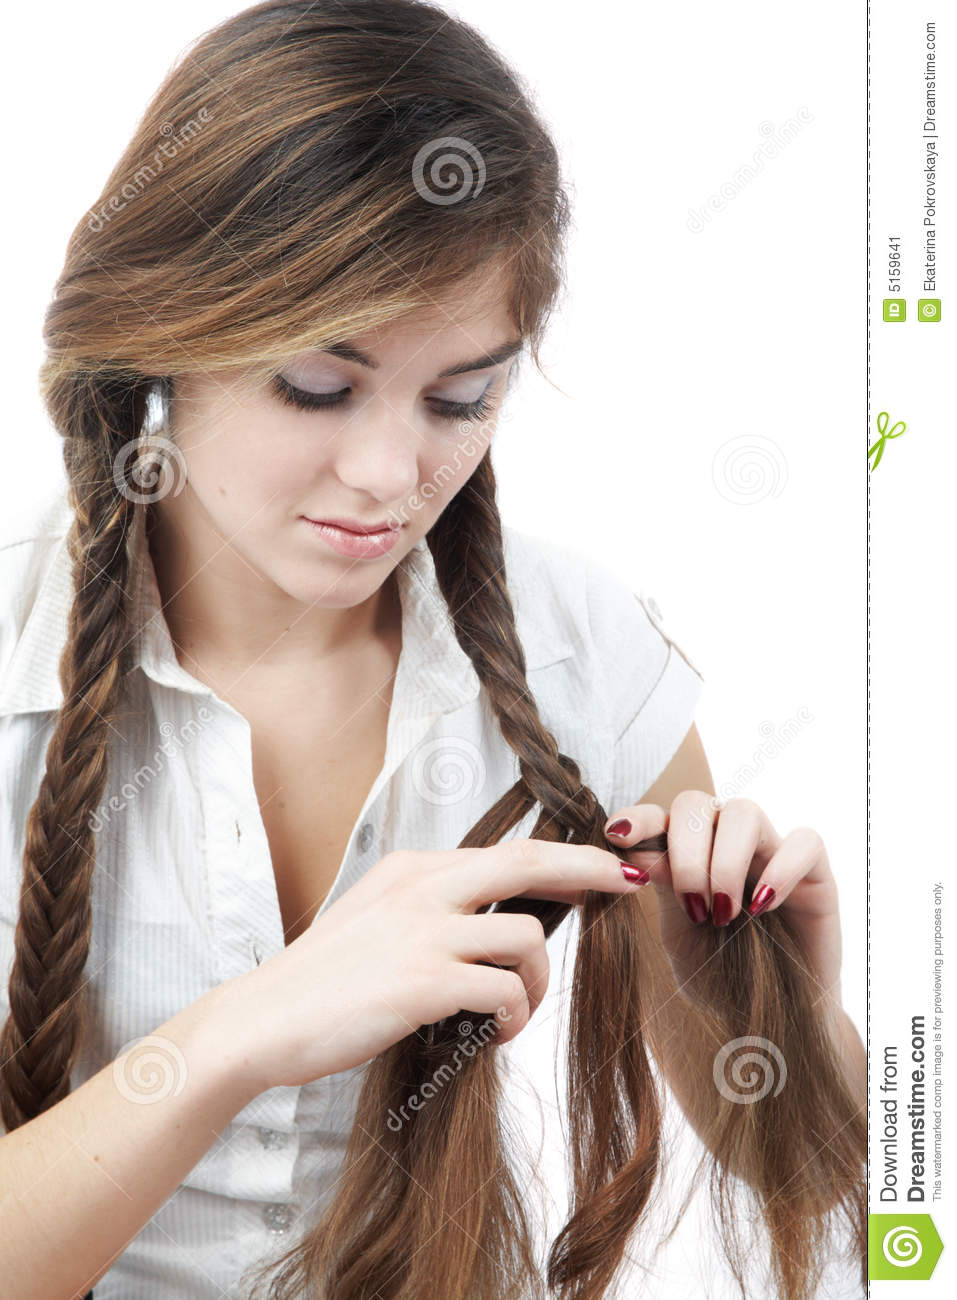 Hairstyles For Long Hair Braids Steps Page 1